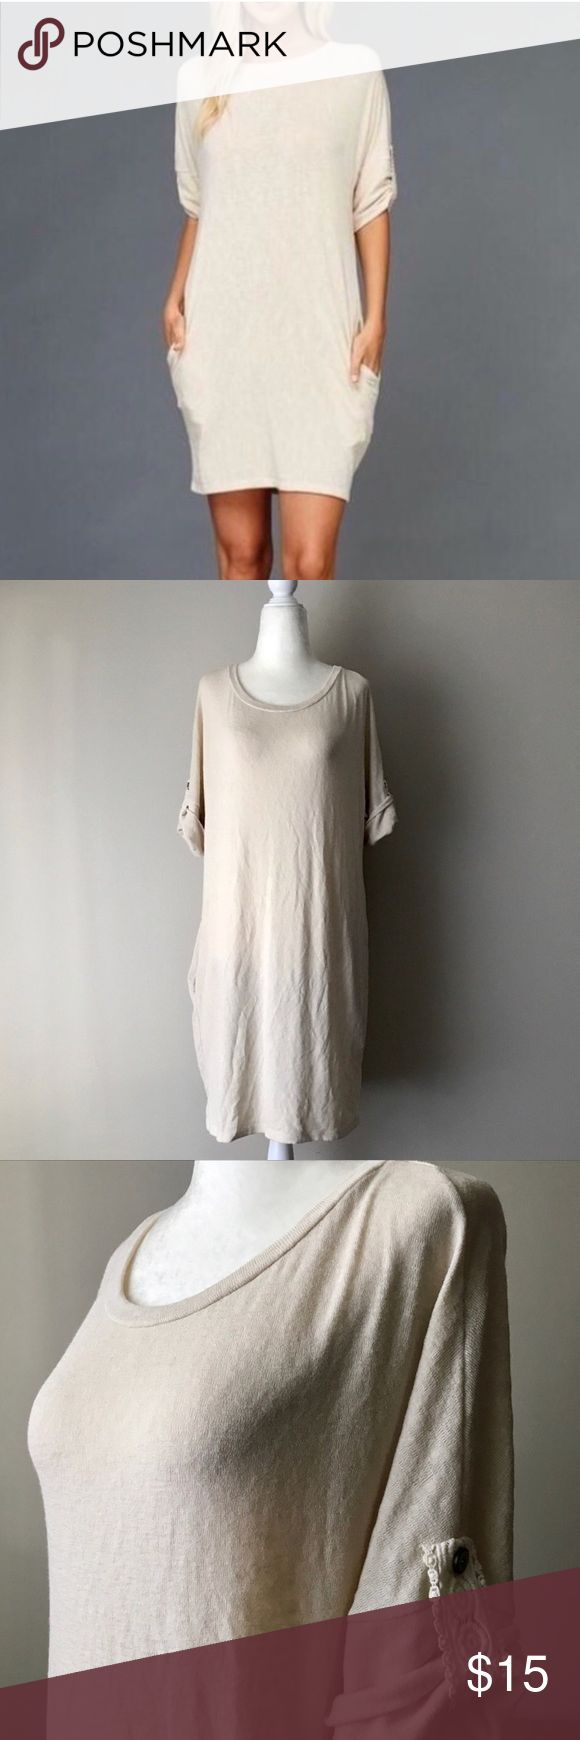 Cream sweater dress Cream sweater dress with cute laced accents on the sleeves with pockets! Soft sweater material Dresses Midi